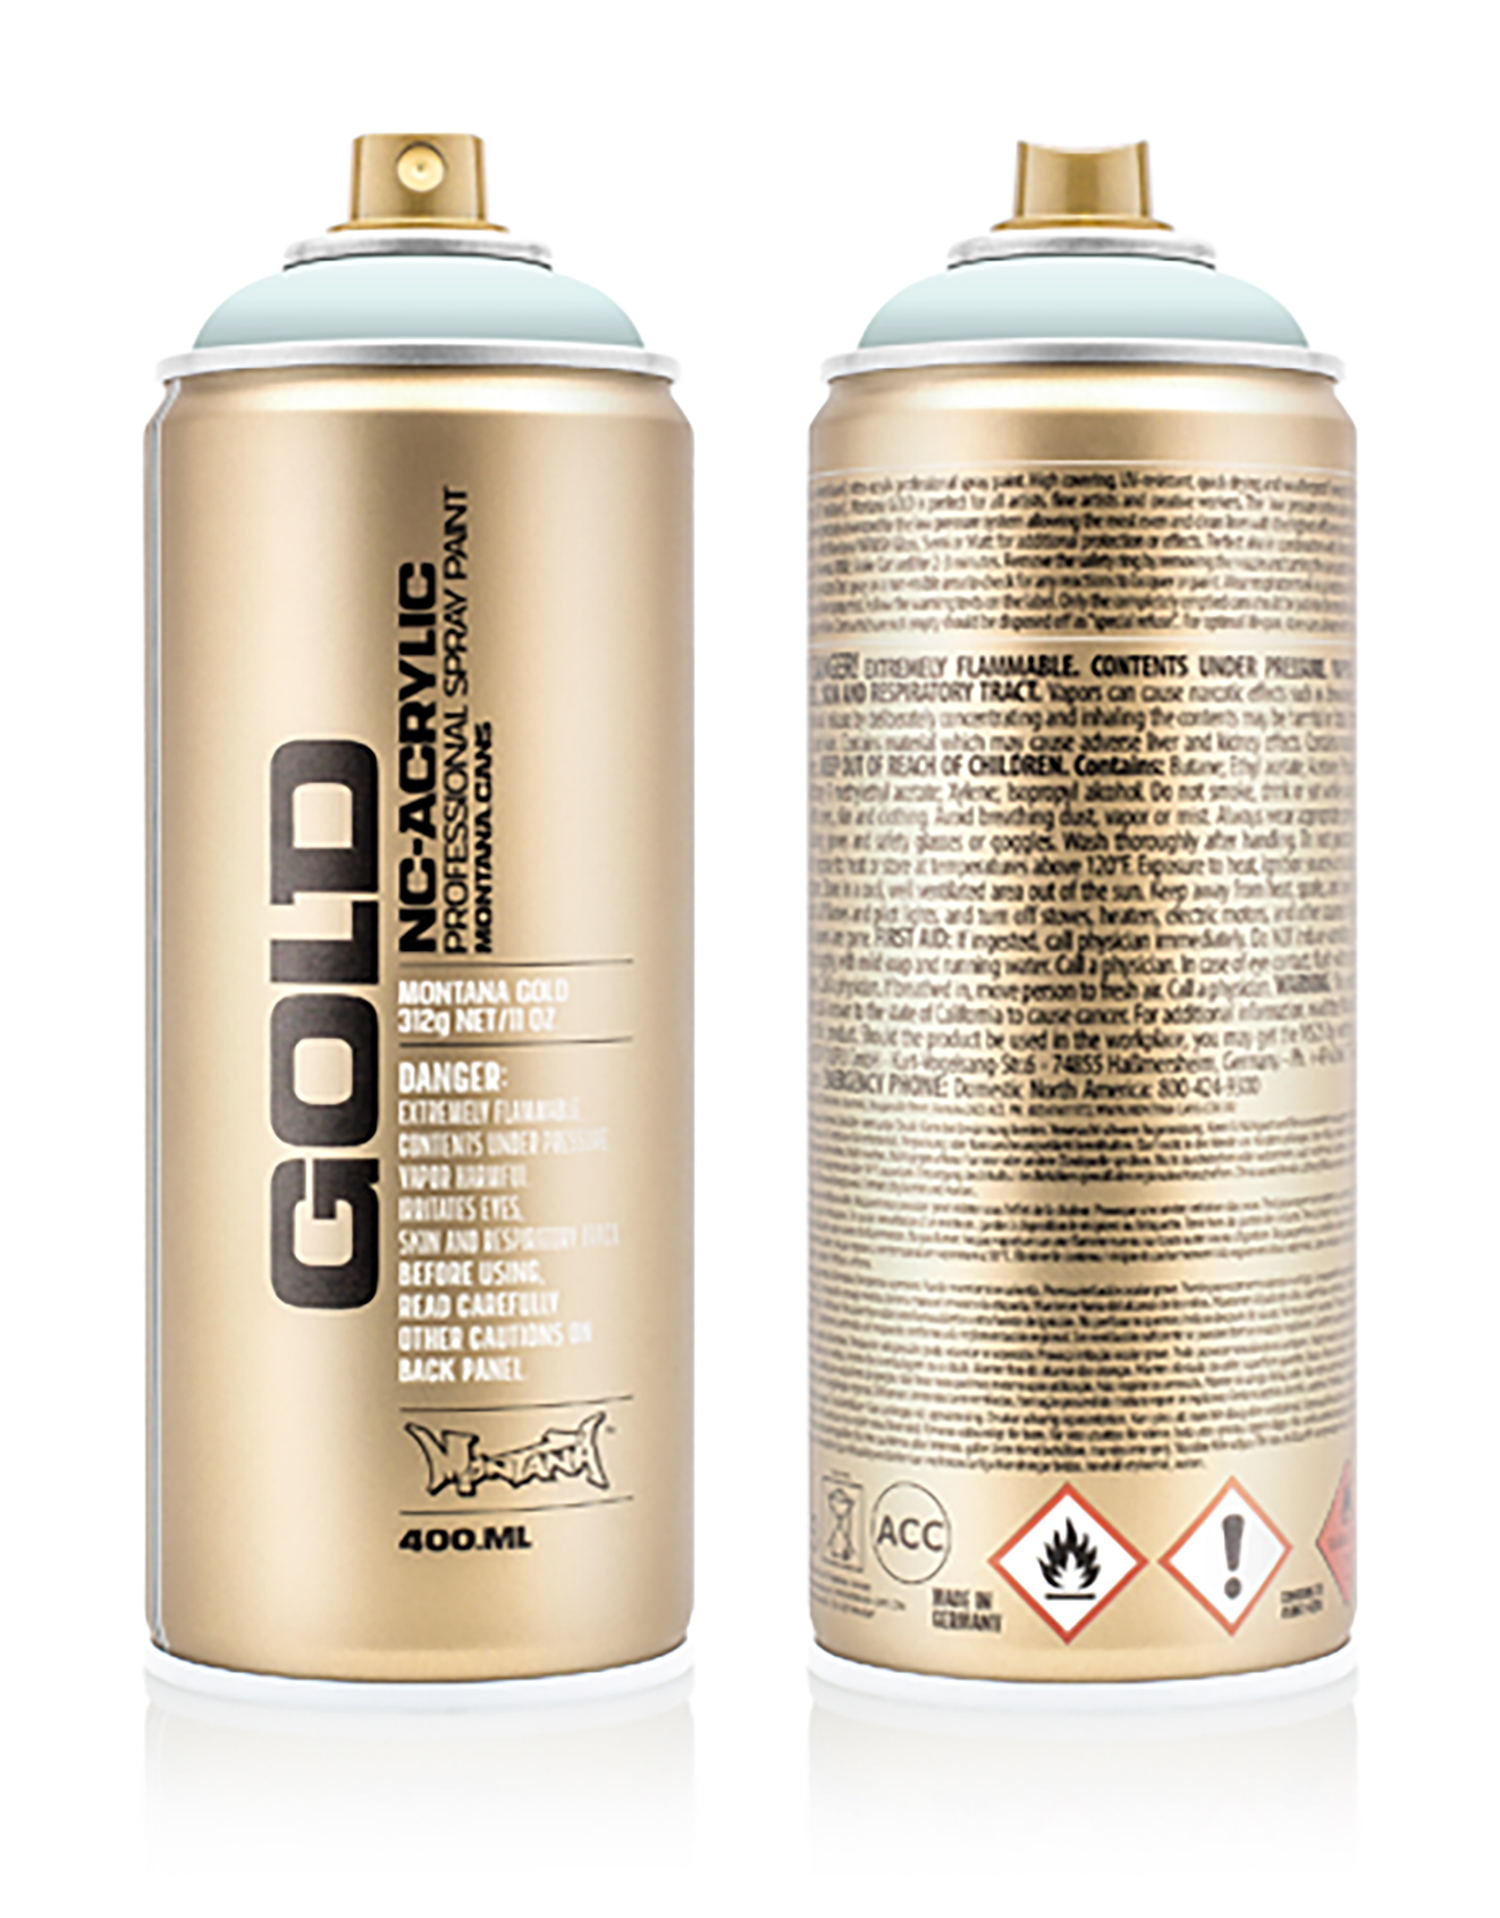 MONTANA-GOLD-SPRAY-400ML-G-5100